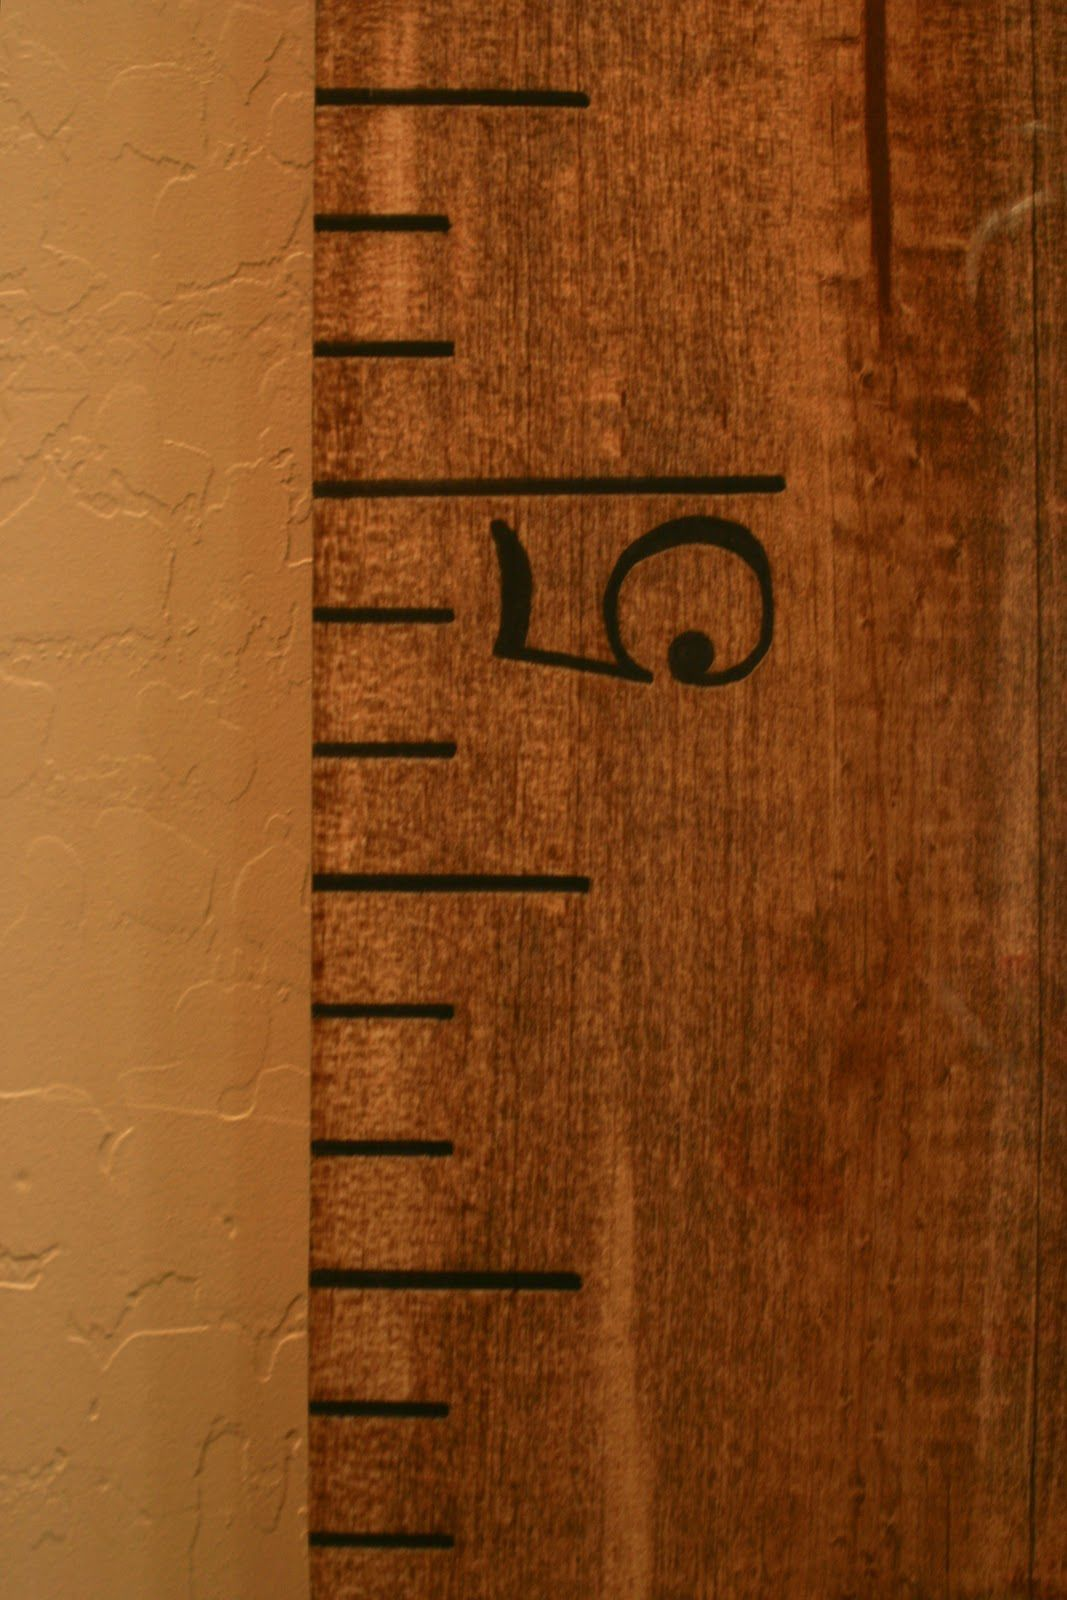 Diy oversized growth chart ruler because i like to decorate diy oversized growth chart ruler because i like to decorate geenschuldenfo Choice Image